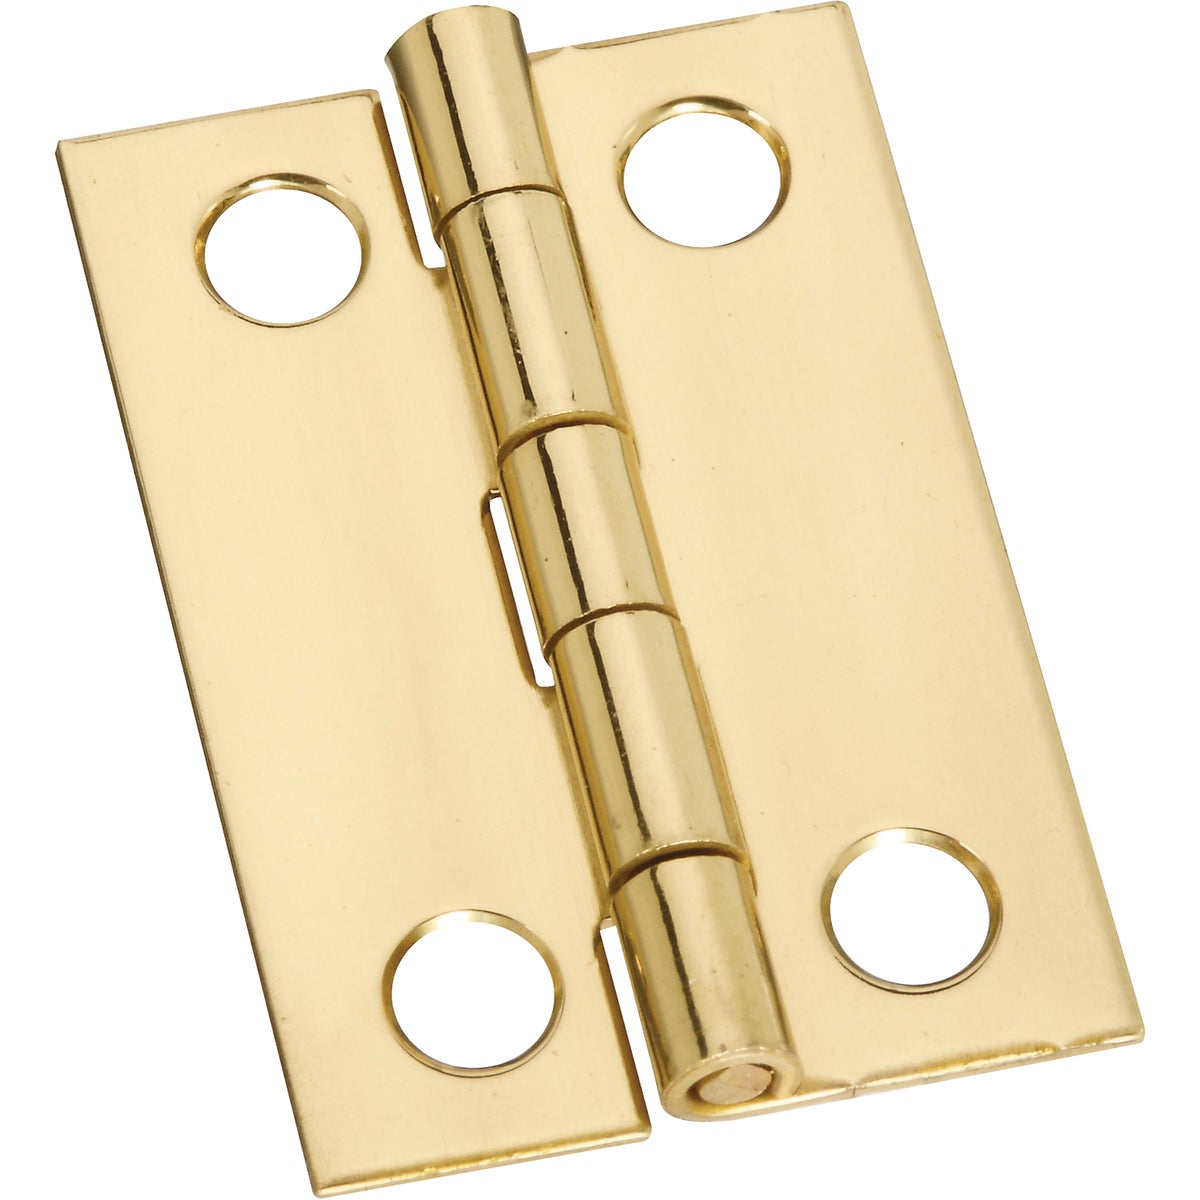 "1.5X1"" SB MEDIUM HINGE - N211292 by National Mfg Co"